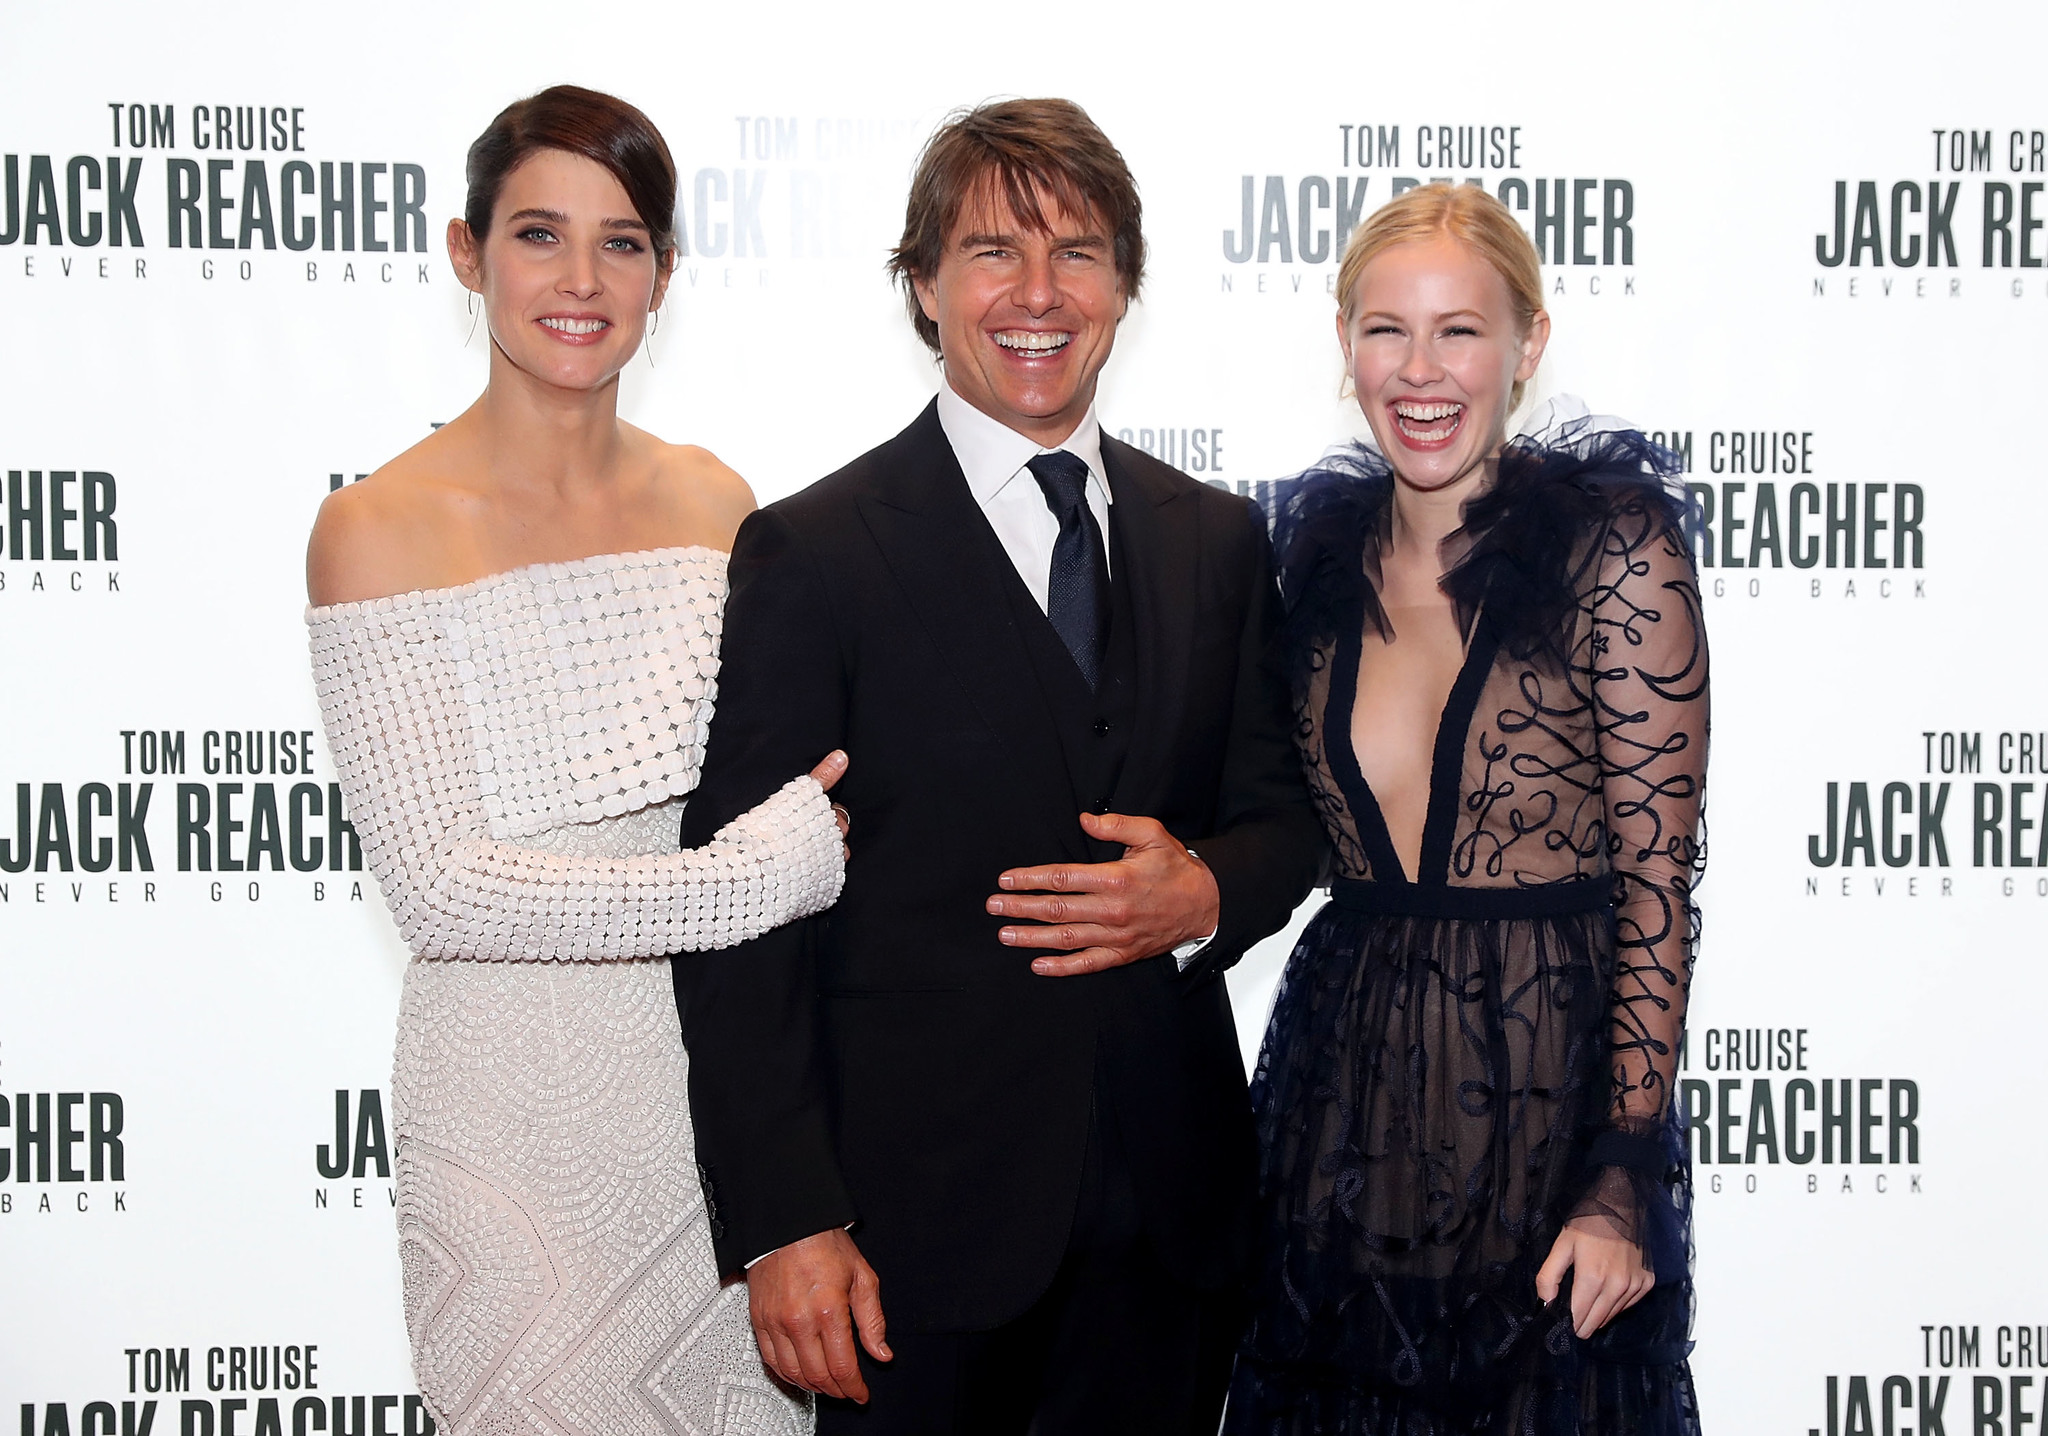 Tom Cruise, Cobie Smulders, and Danika Yarosh at an event for Jack Reacher: Never Go Back (2016)